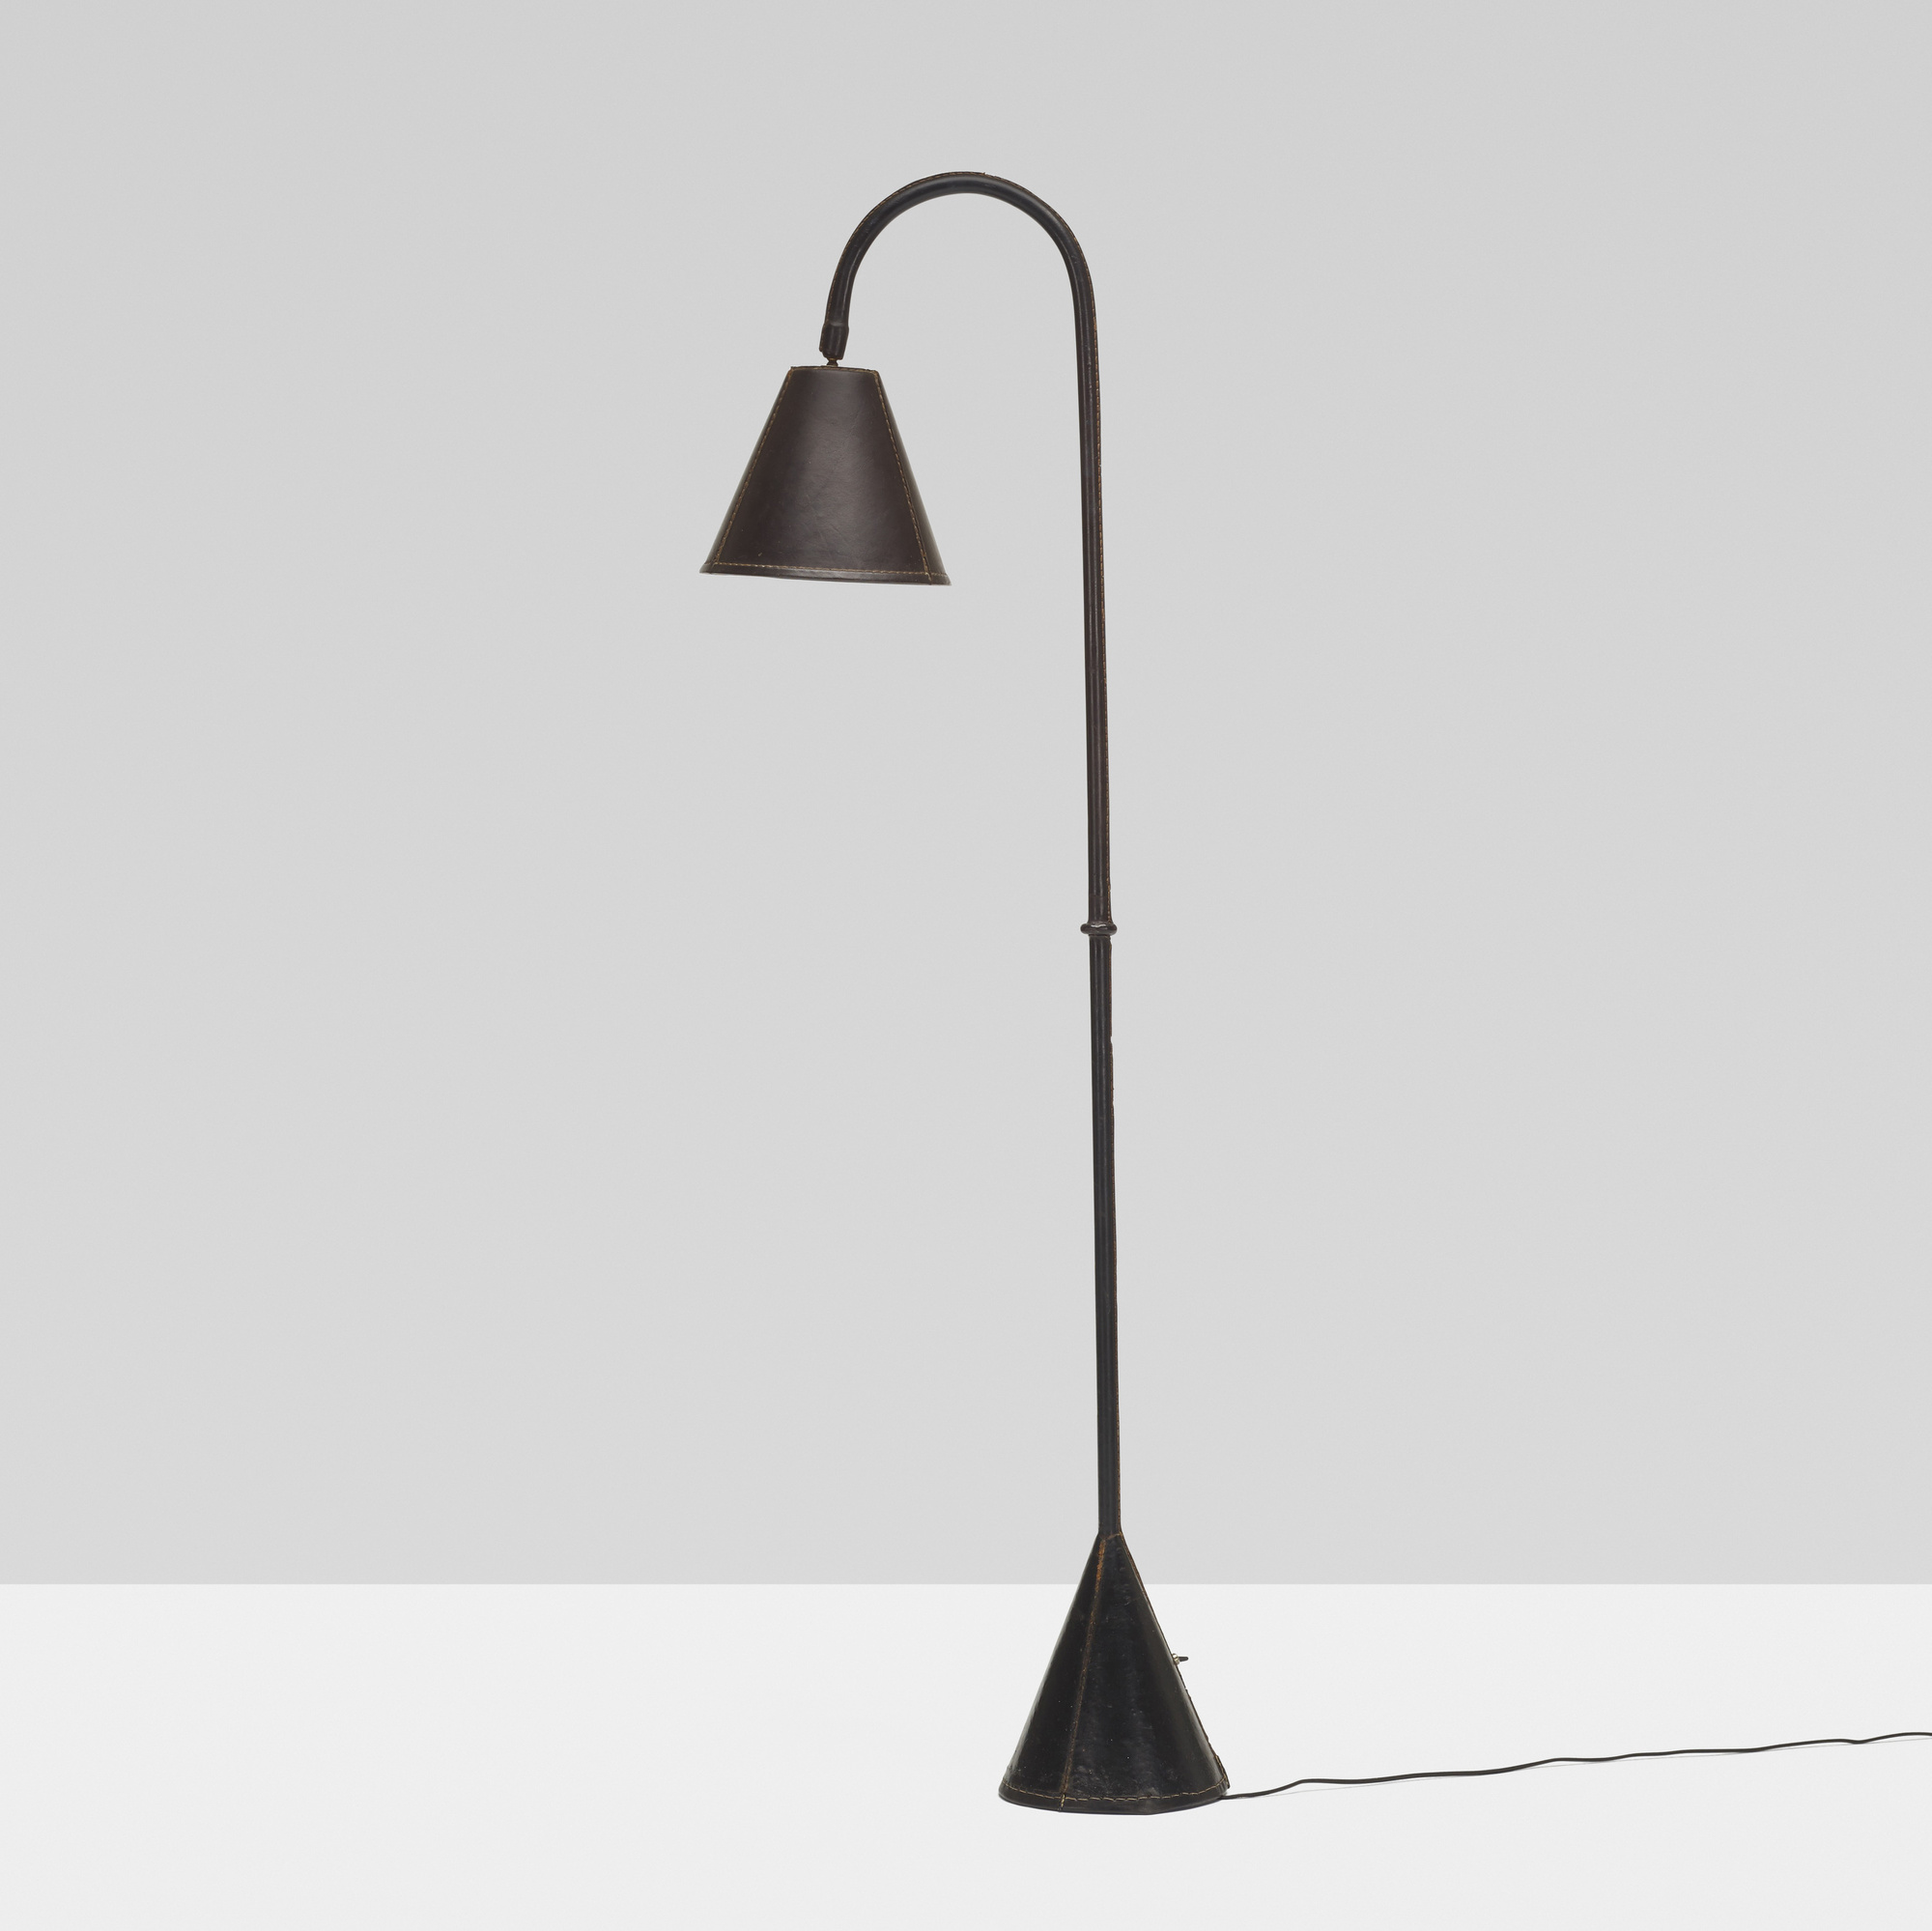 295: Jacques Adnet / floor lamp (1 of 2)